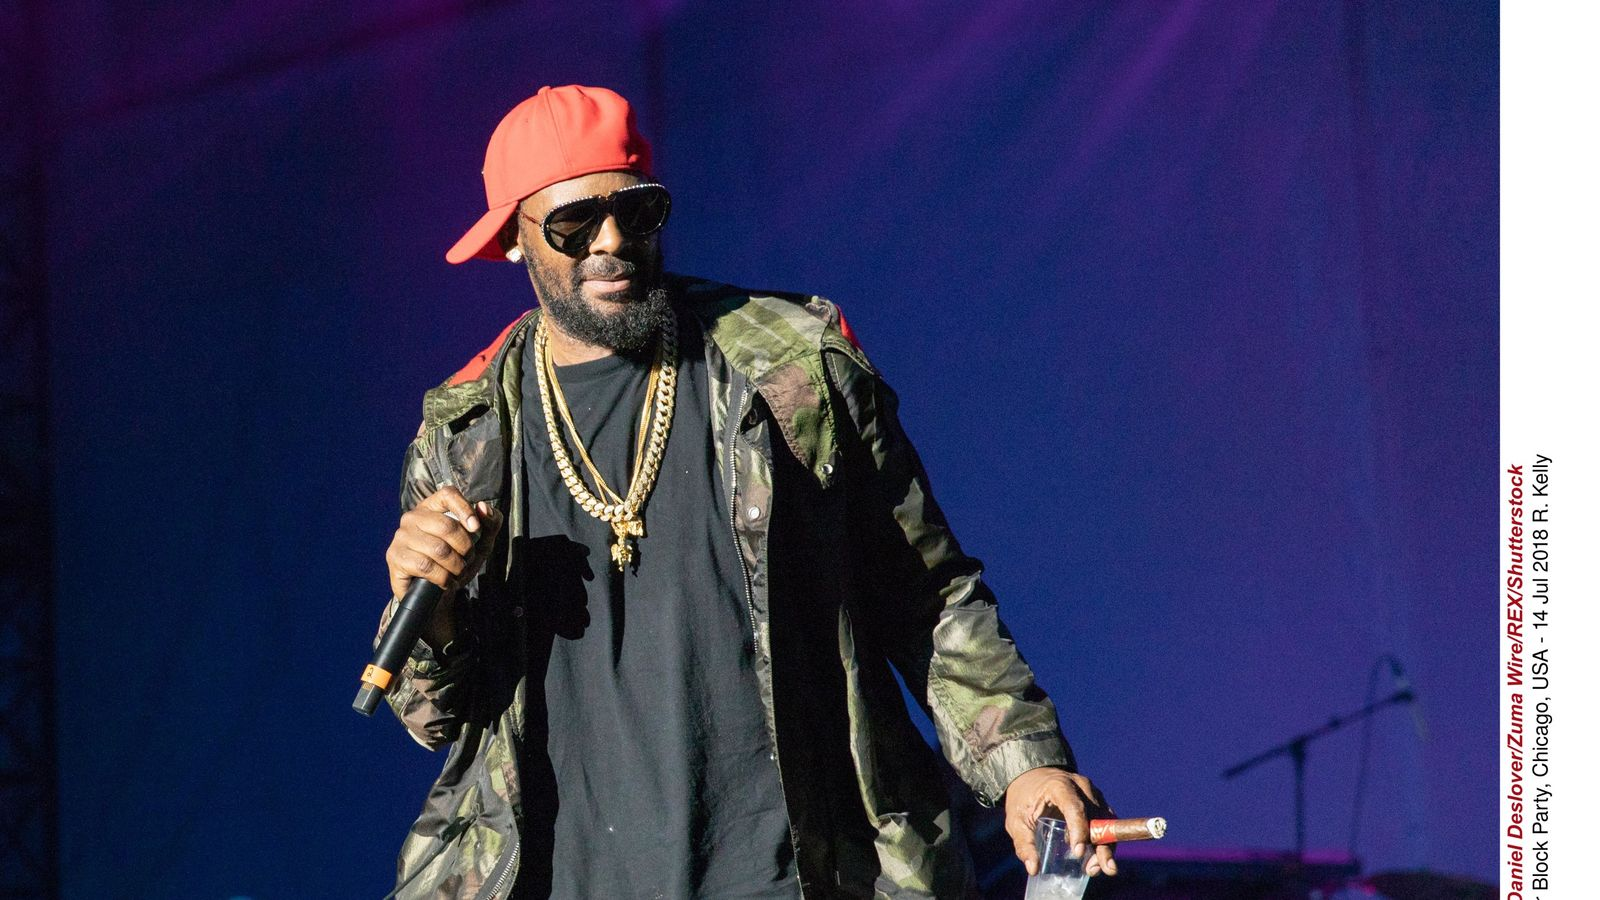 R Kelly asks judge for permission to perform gigs in Dubai